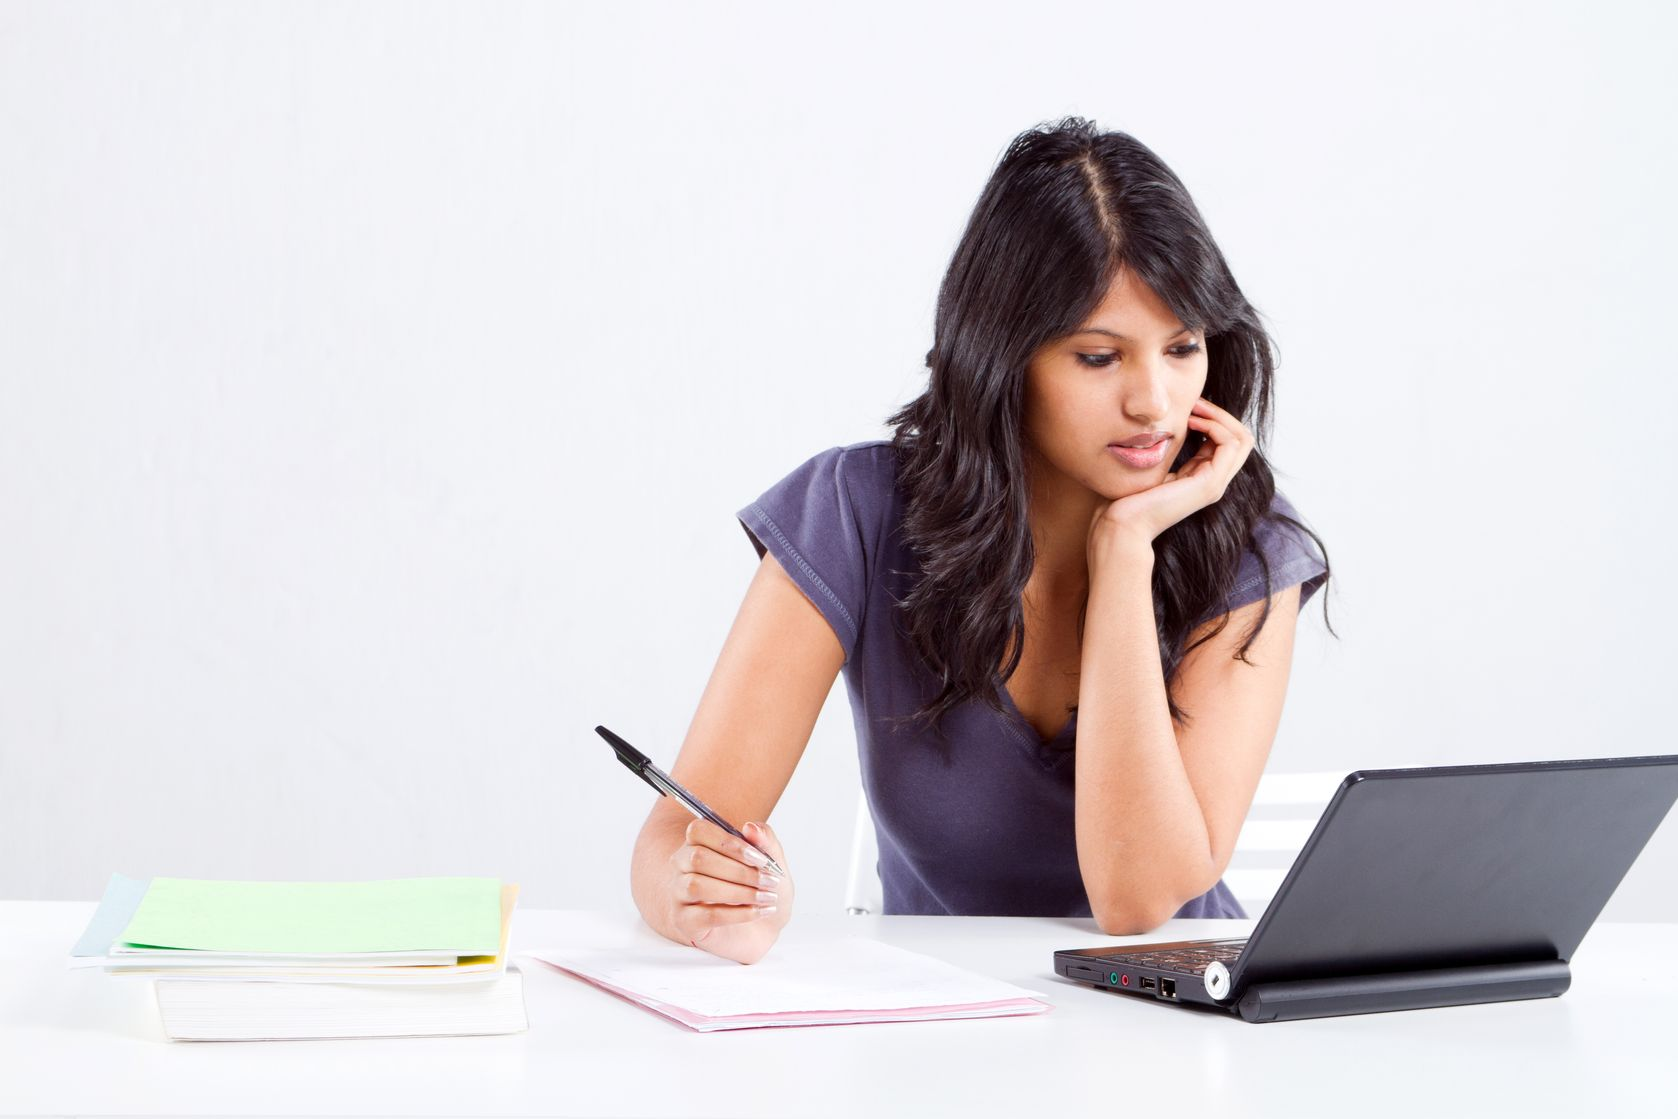 creative writing exercises for college students Learn about these summer programs for students interested in creative writing which can add to a student's college application.